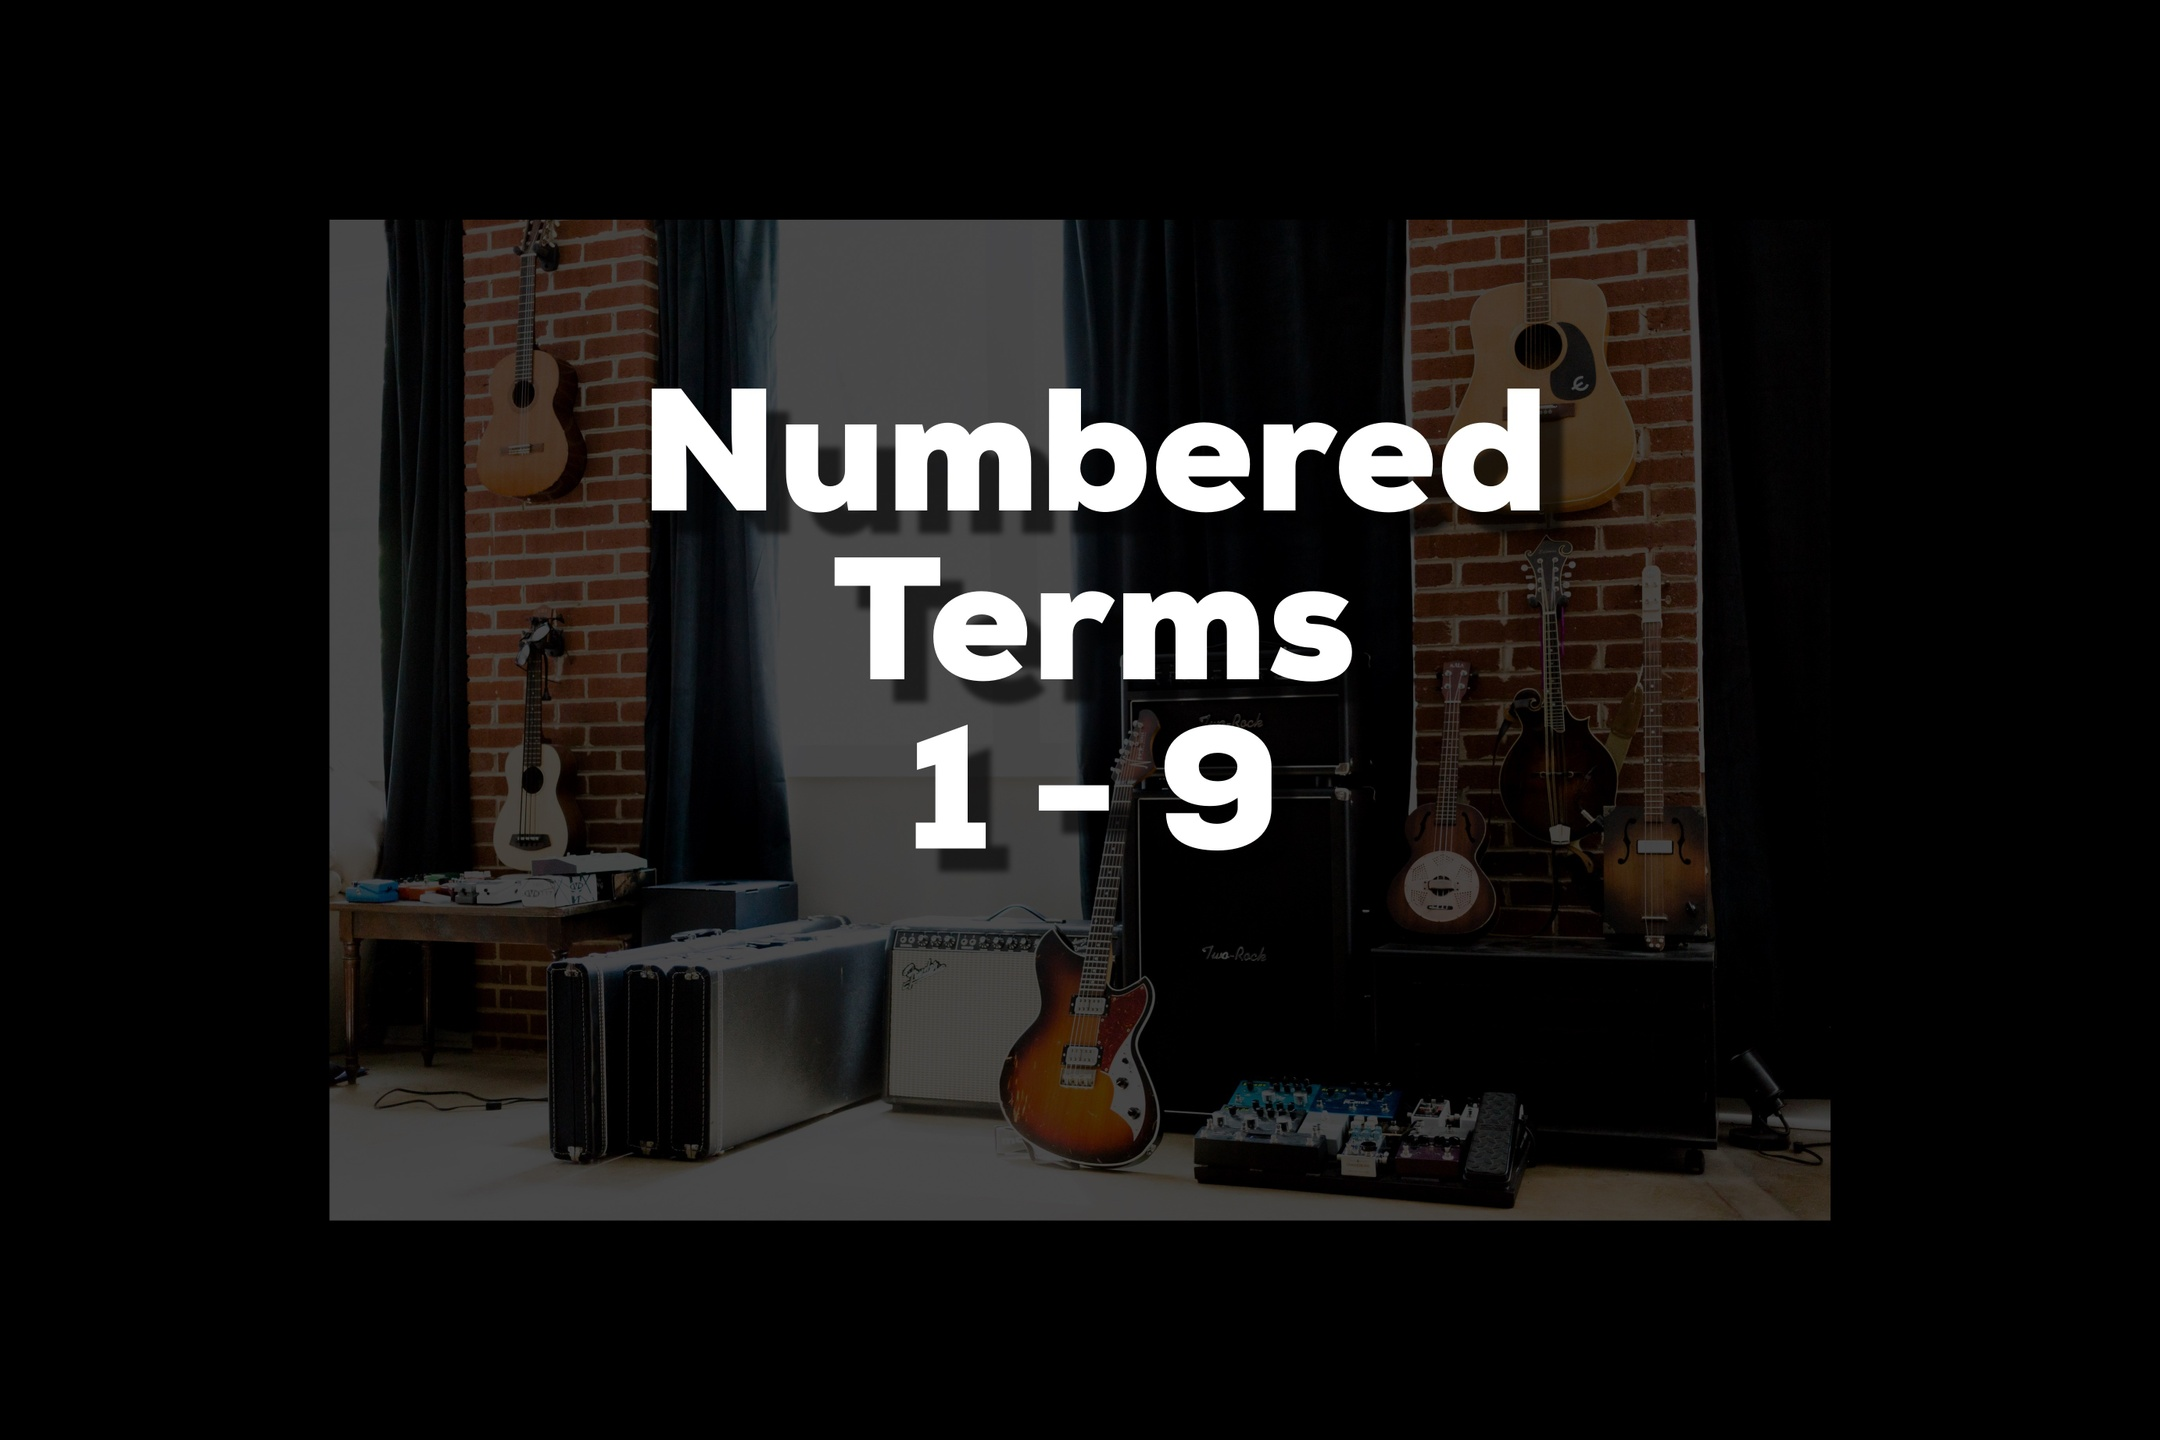 Glossary section containing music and guitar words that start with numbers 1-9